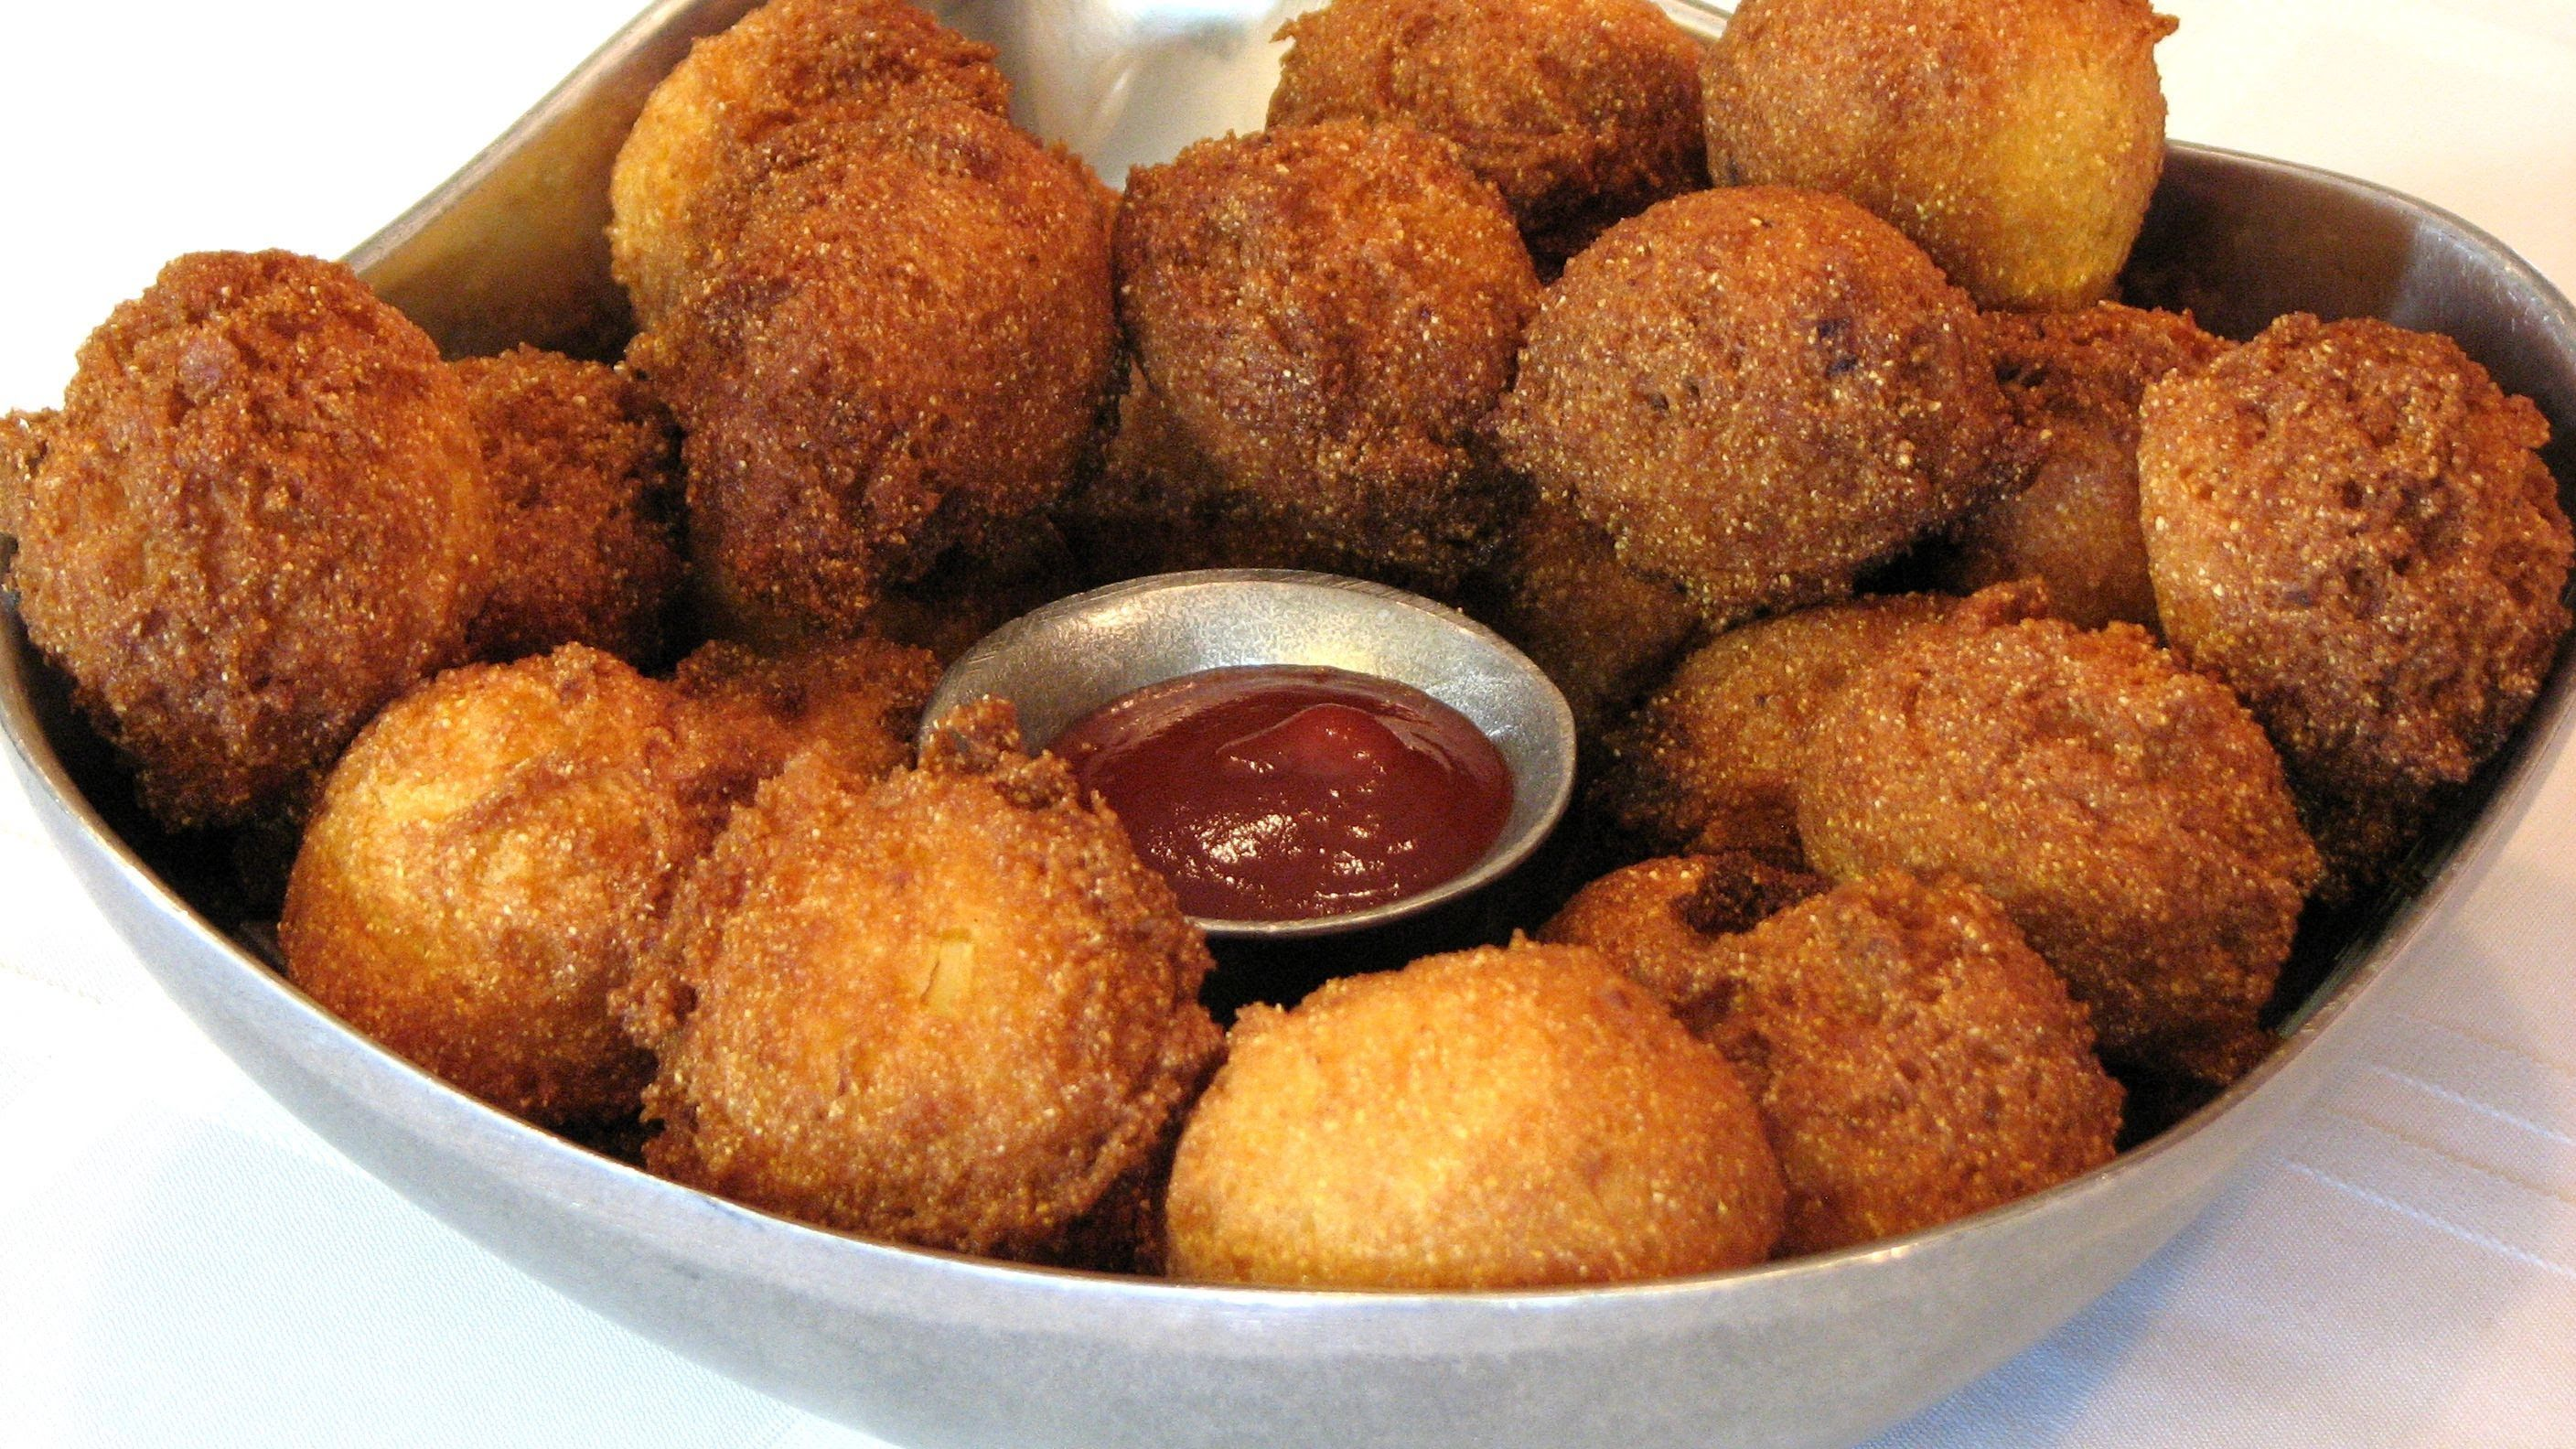 Hush Puppies Lynn S Recipes 1 Cup Corn Meal 1 Cup Flour 4 Teaspoons Baking Powder Small Onion Finely Minced Te With Images Recipes Hush Puppies Recipe Food Videos